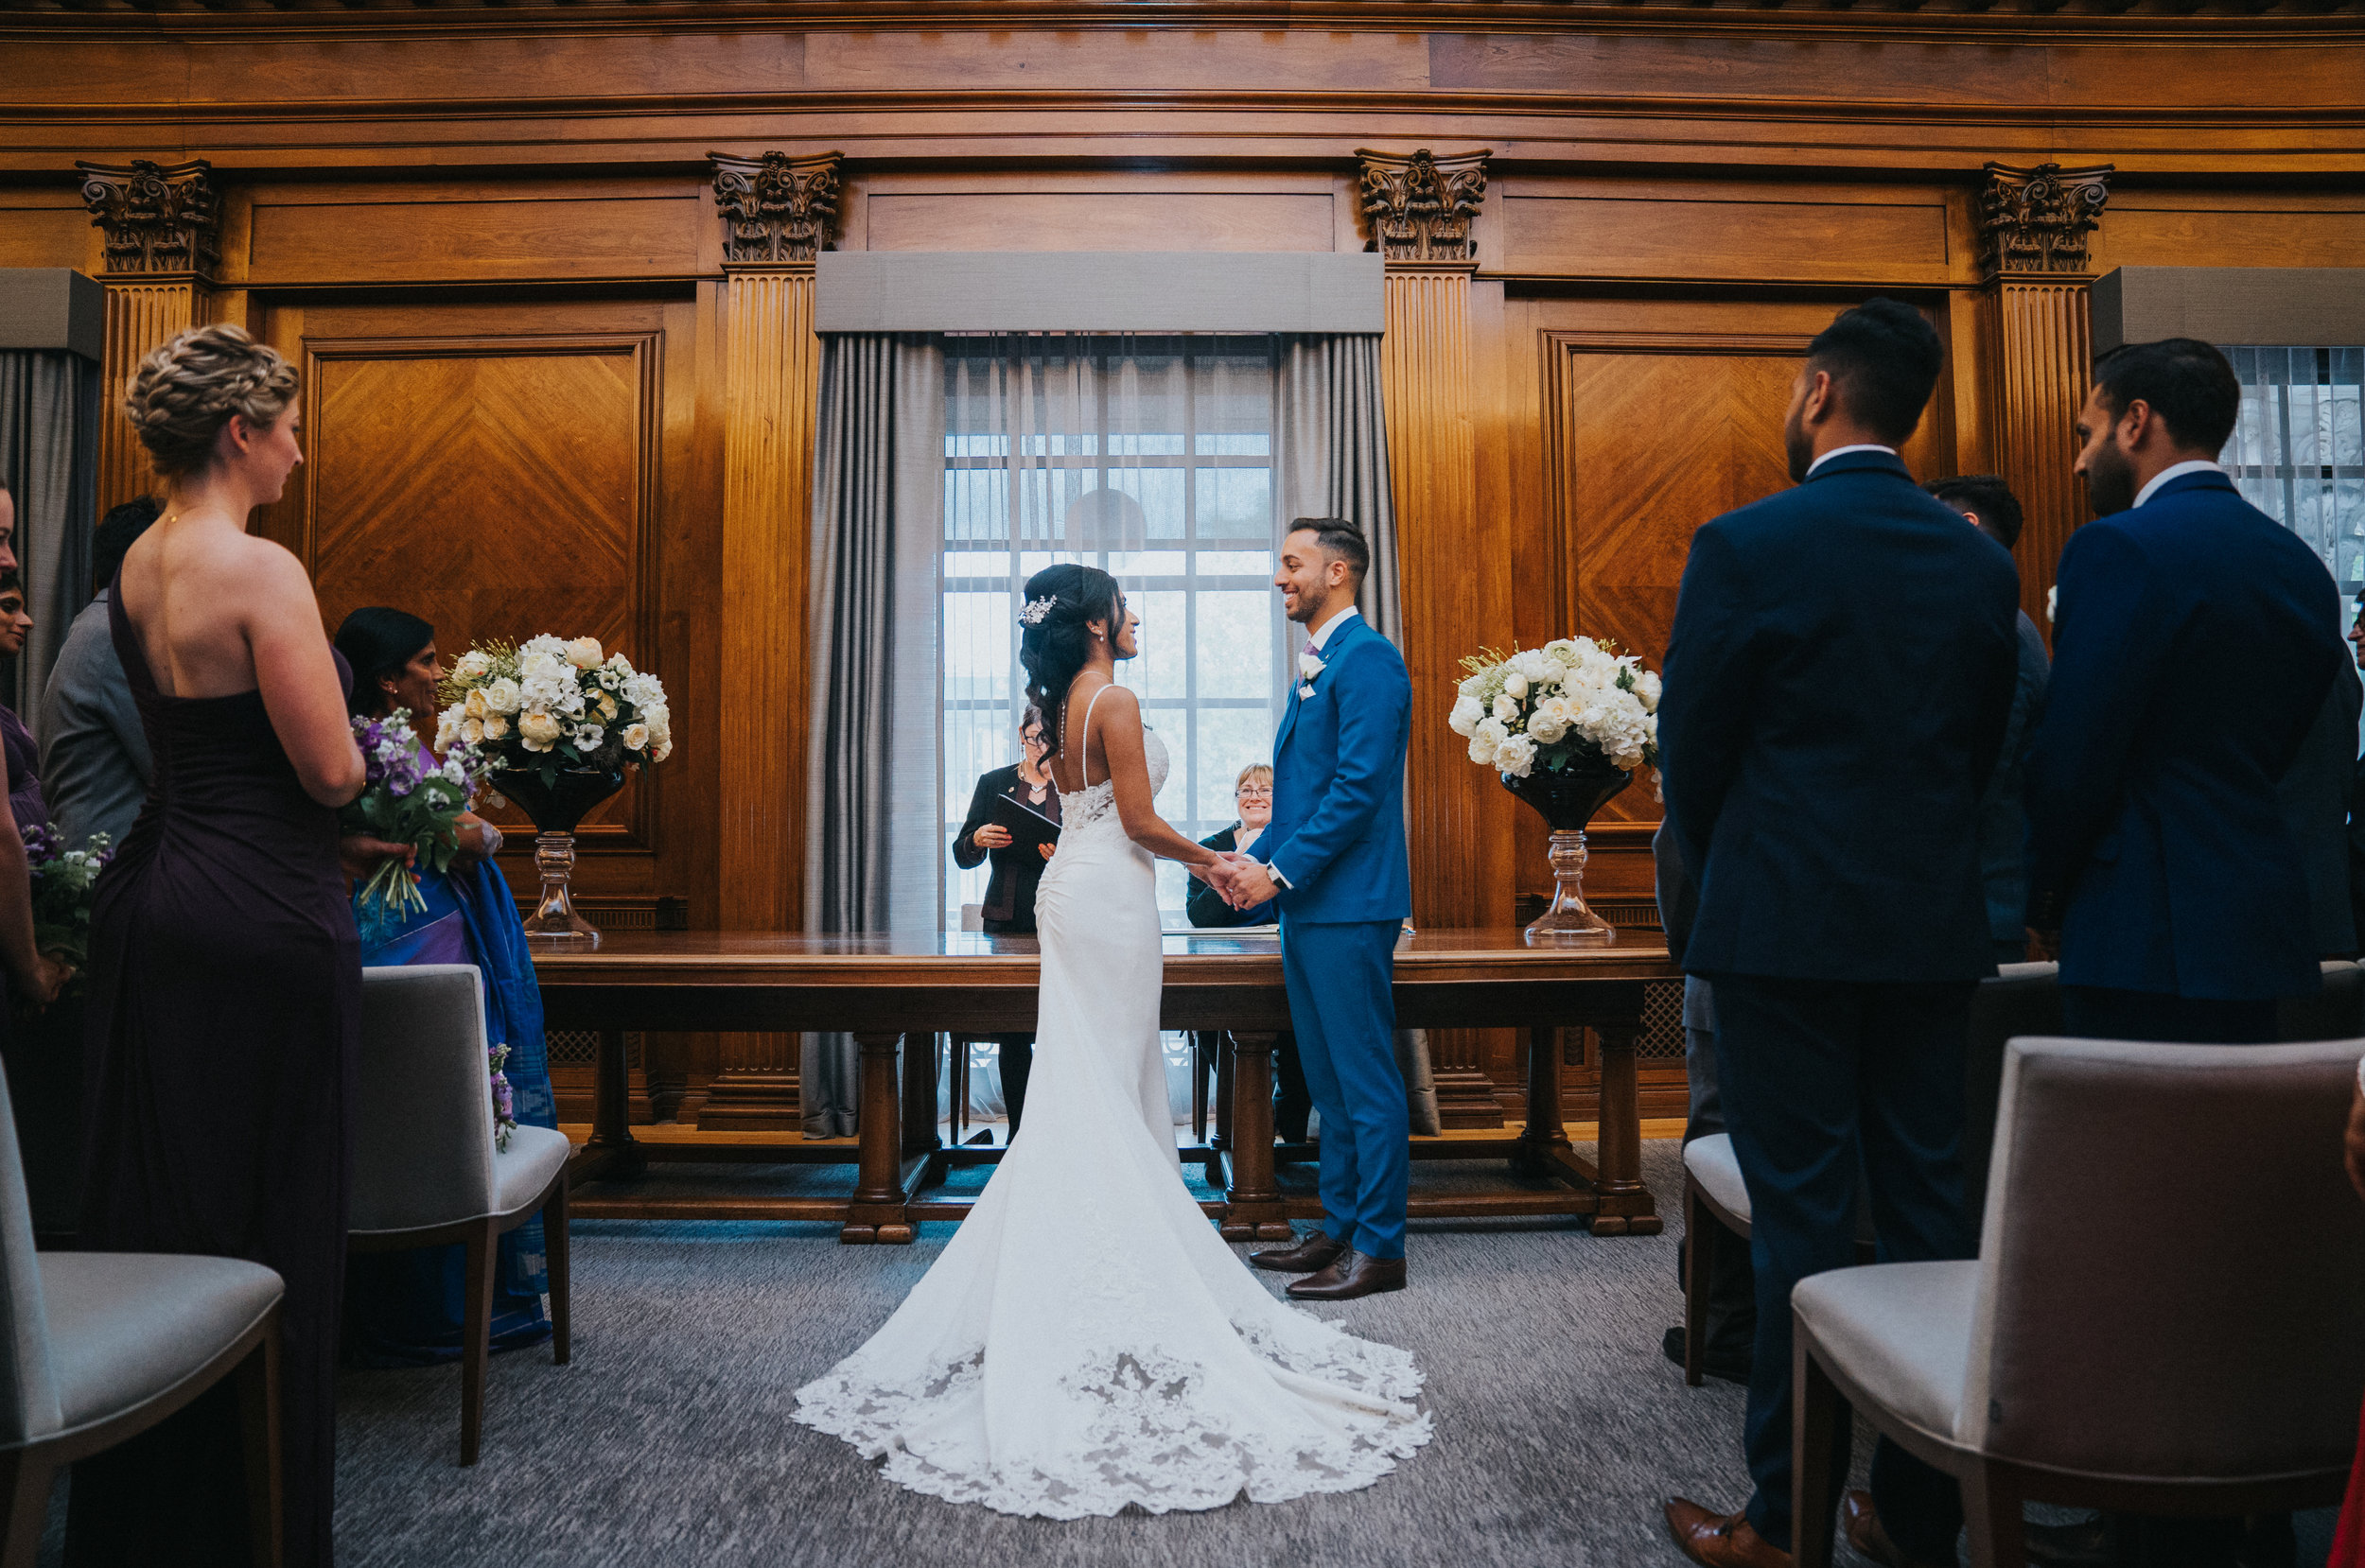 anglo-asian-hindu-civil-wedding-photography-videography-london-portrait-marylebone-old-town-hall-27